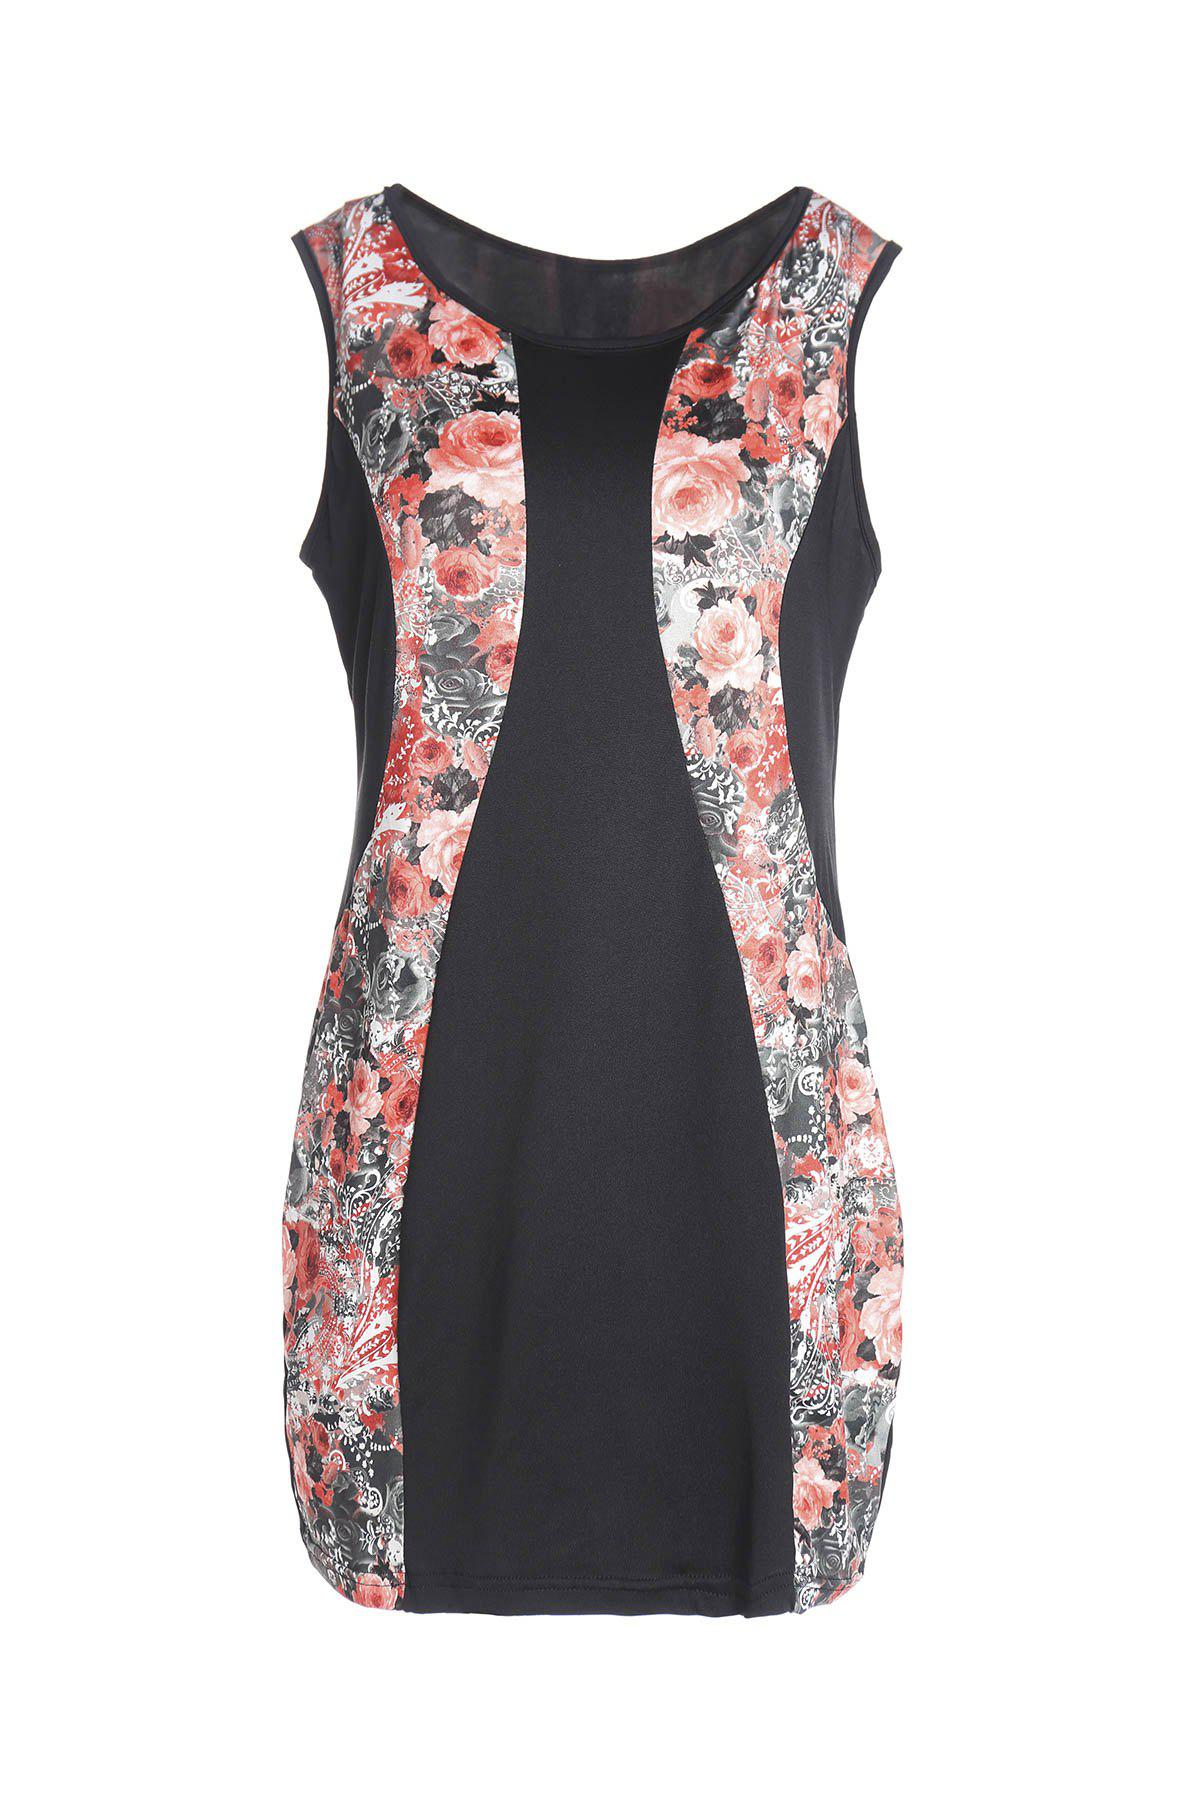 Charming Red Floral Print Sleeveless Bodycon Mini Dress For Women - 2XL RED